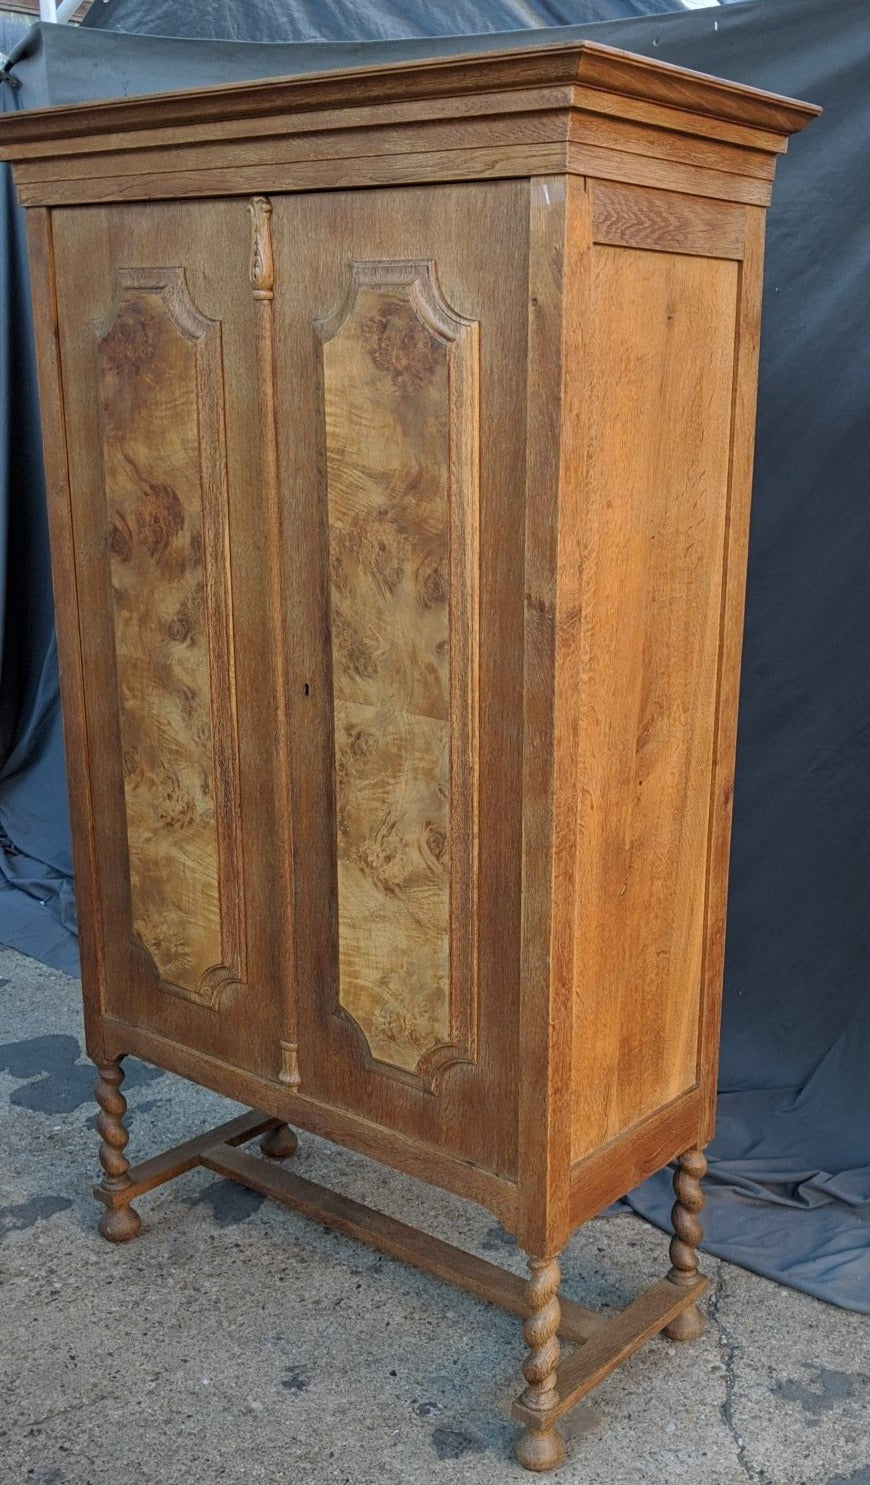 BARLEY TWIST OAK AND BURLED WALNUT CABINET